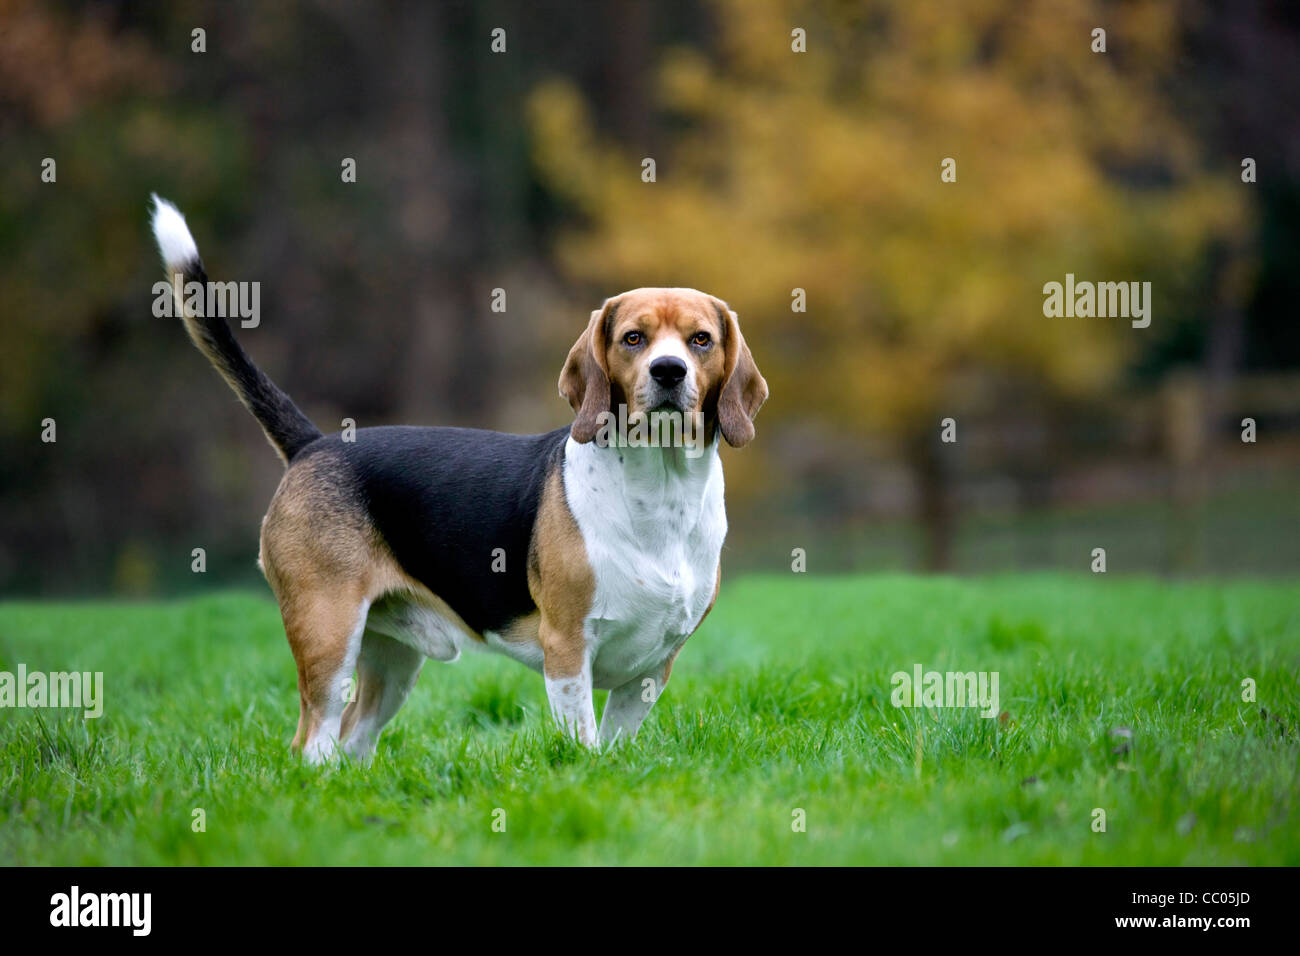 Tricolour Beagle dog in garden - Stock Image